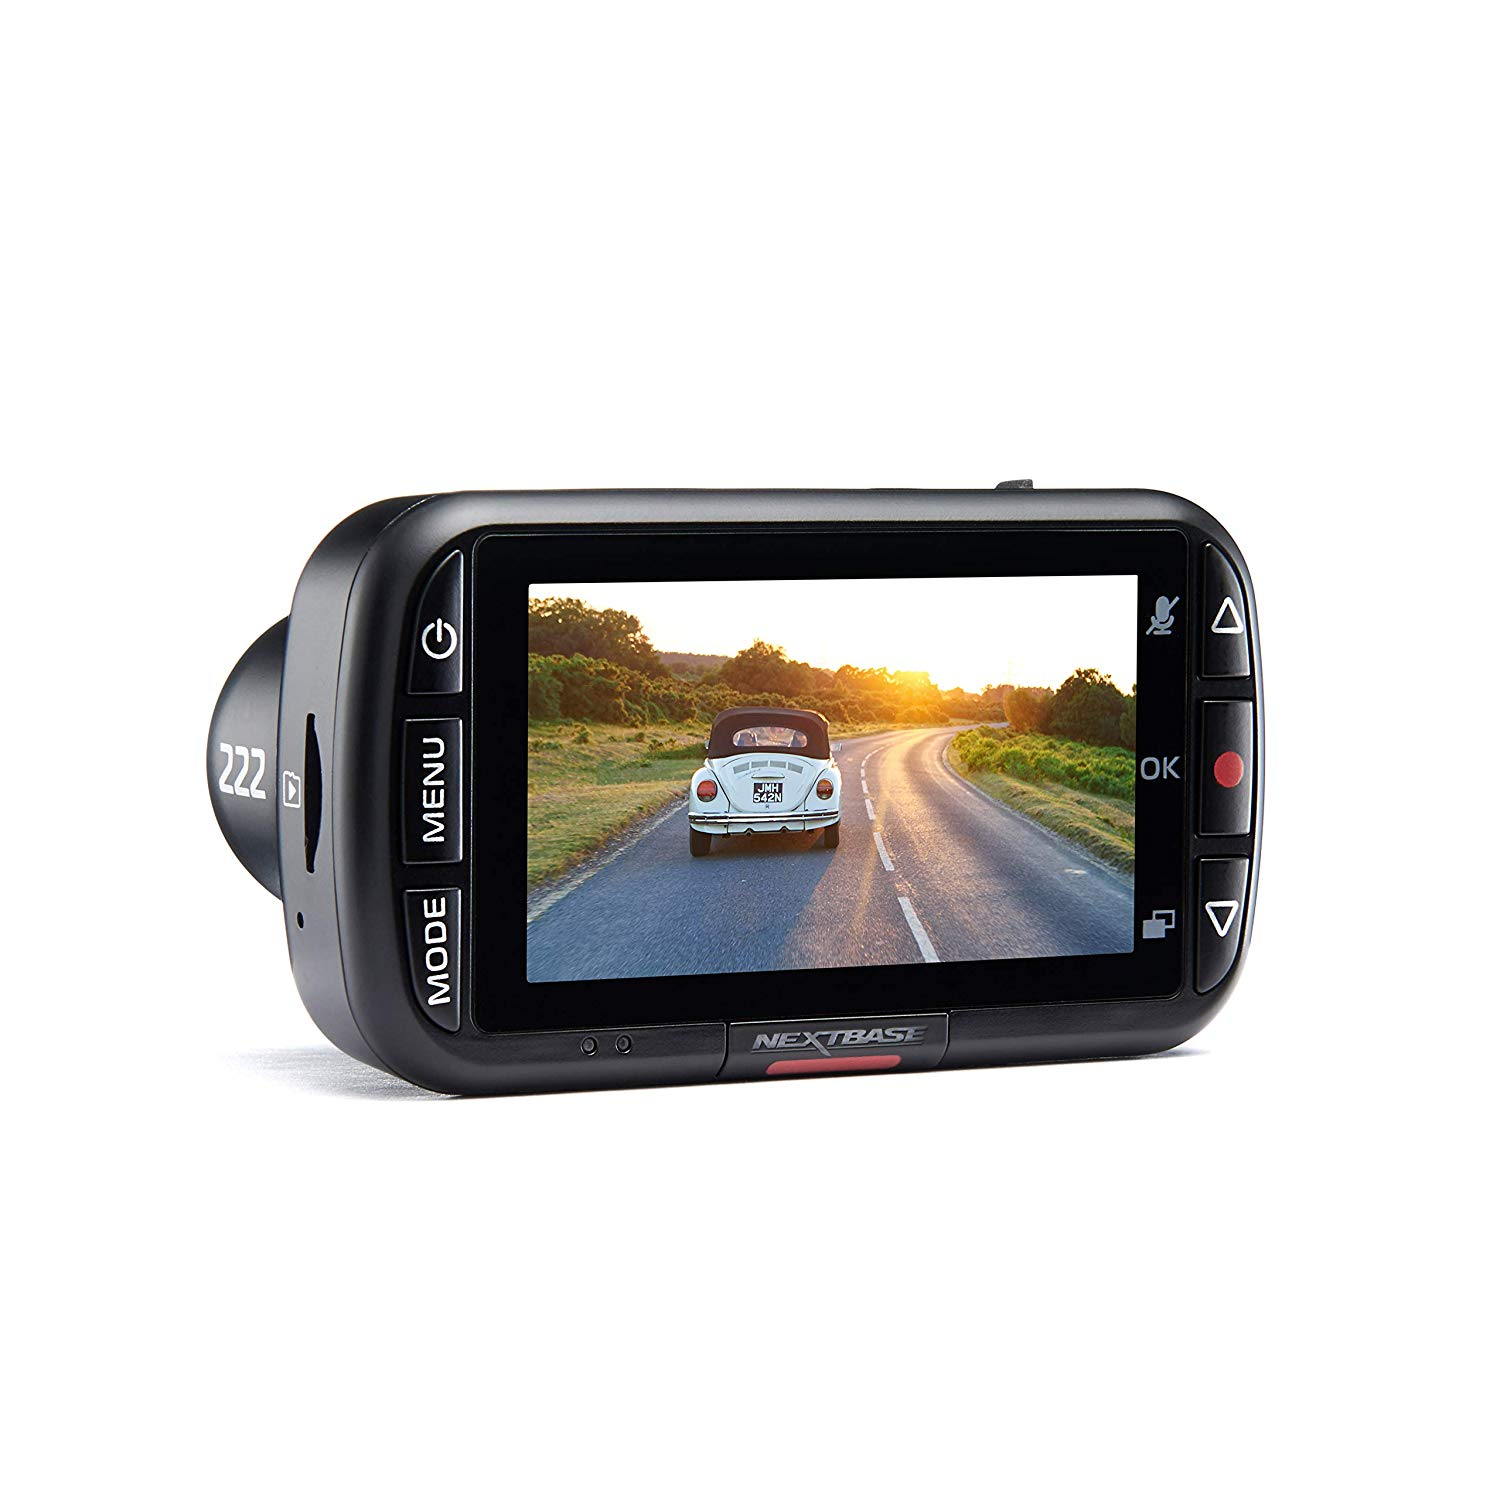 Best Dash Cams For Your Car Our Top Picks For 2019